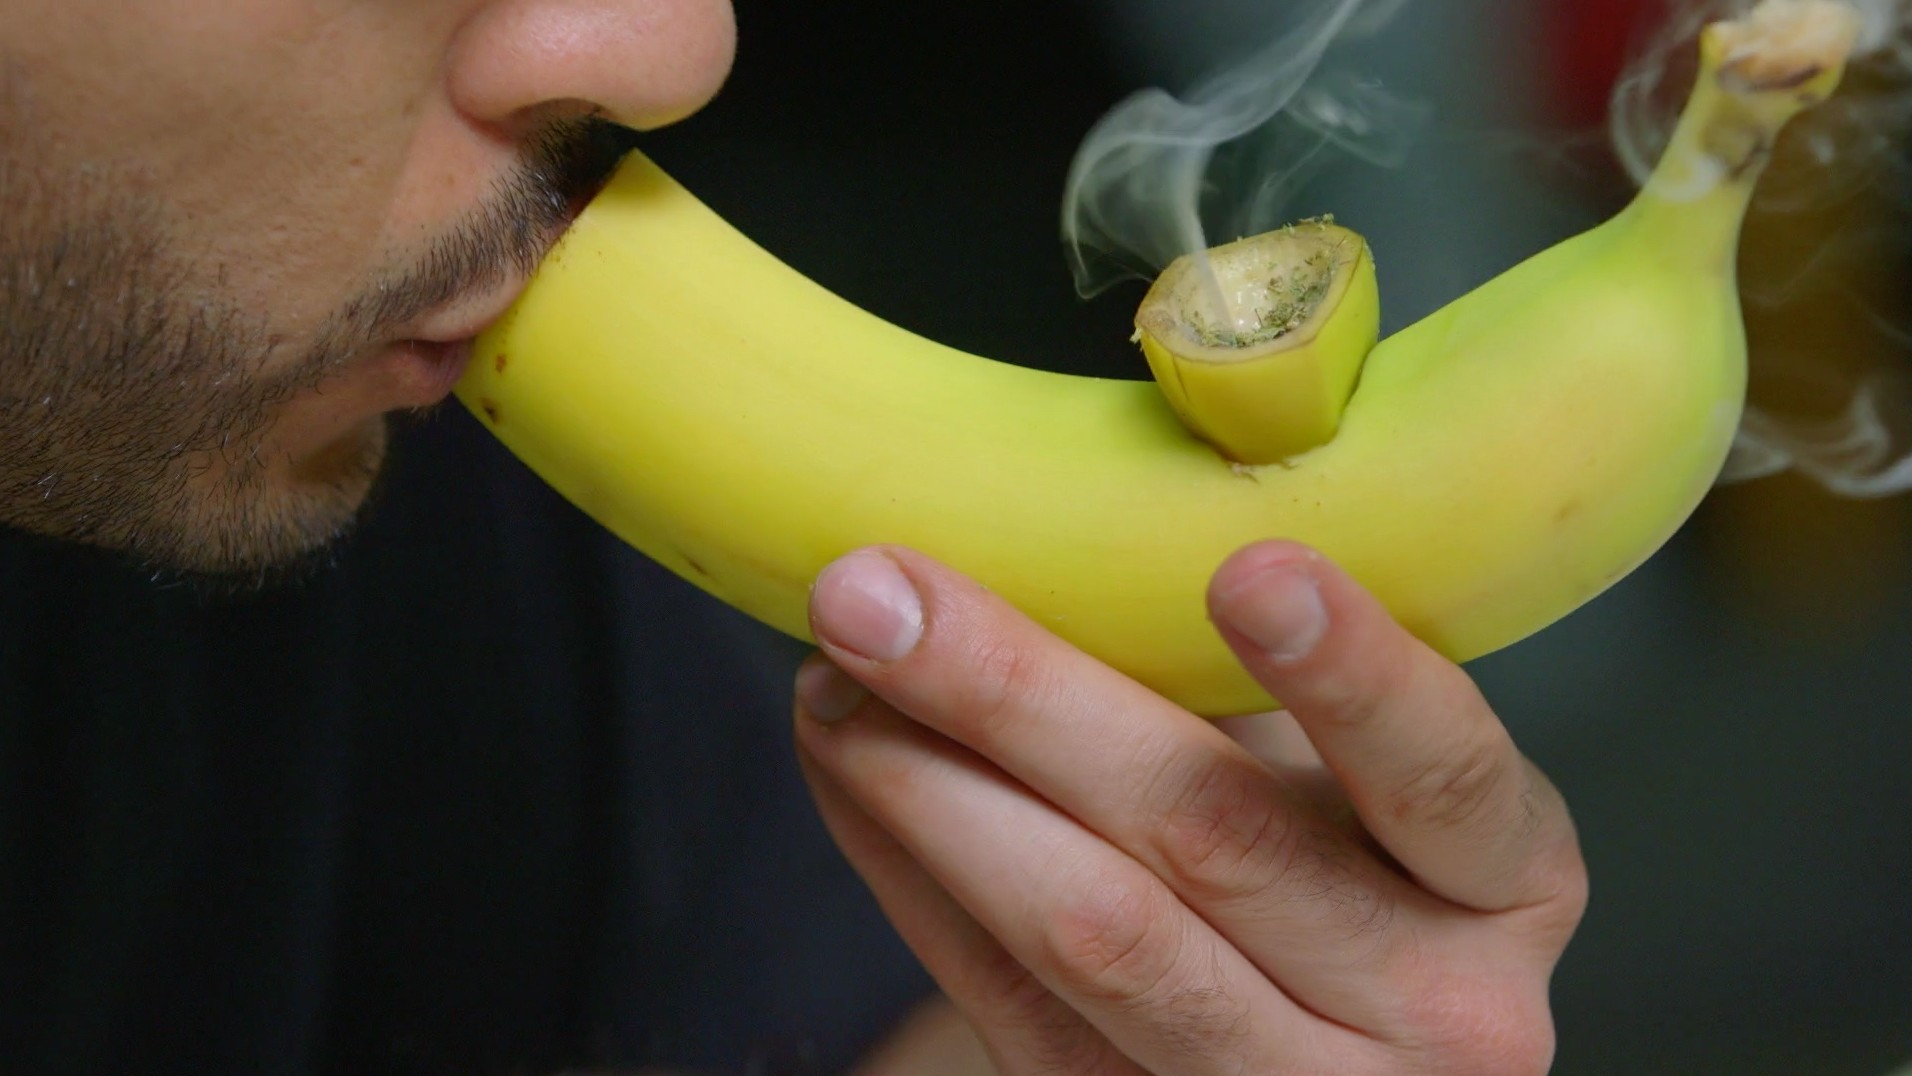 How to Make a Pipe Out of a Banana - Smokeables - VICE Video